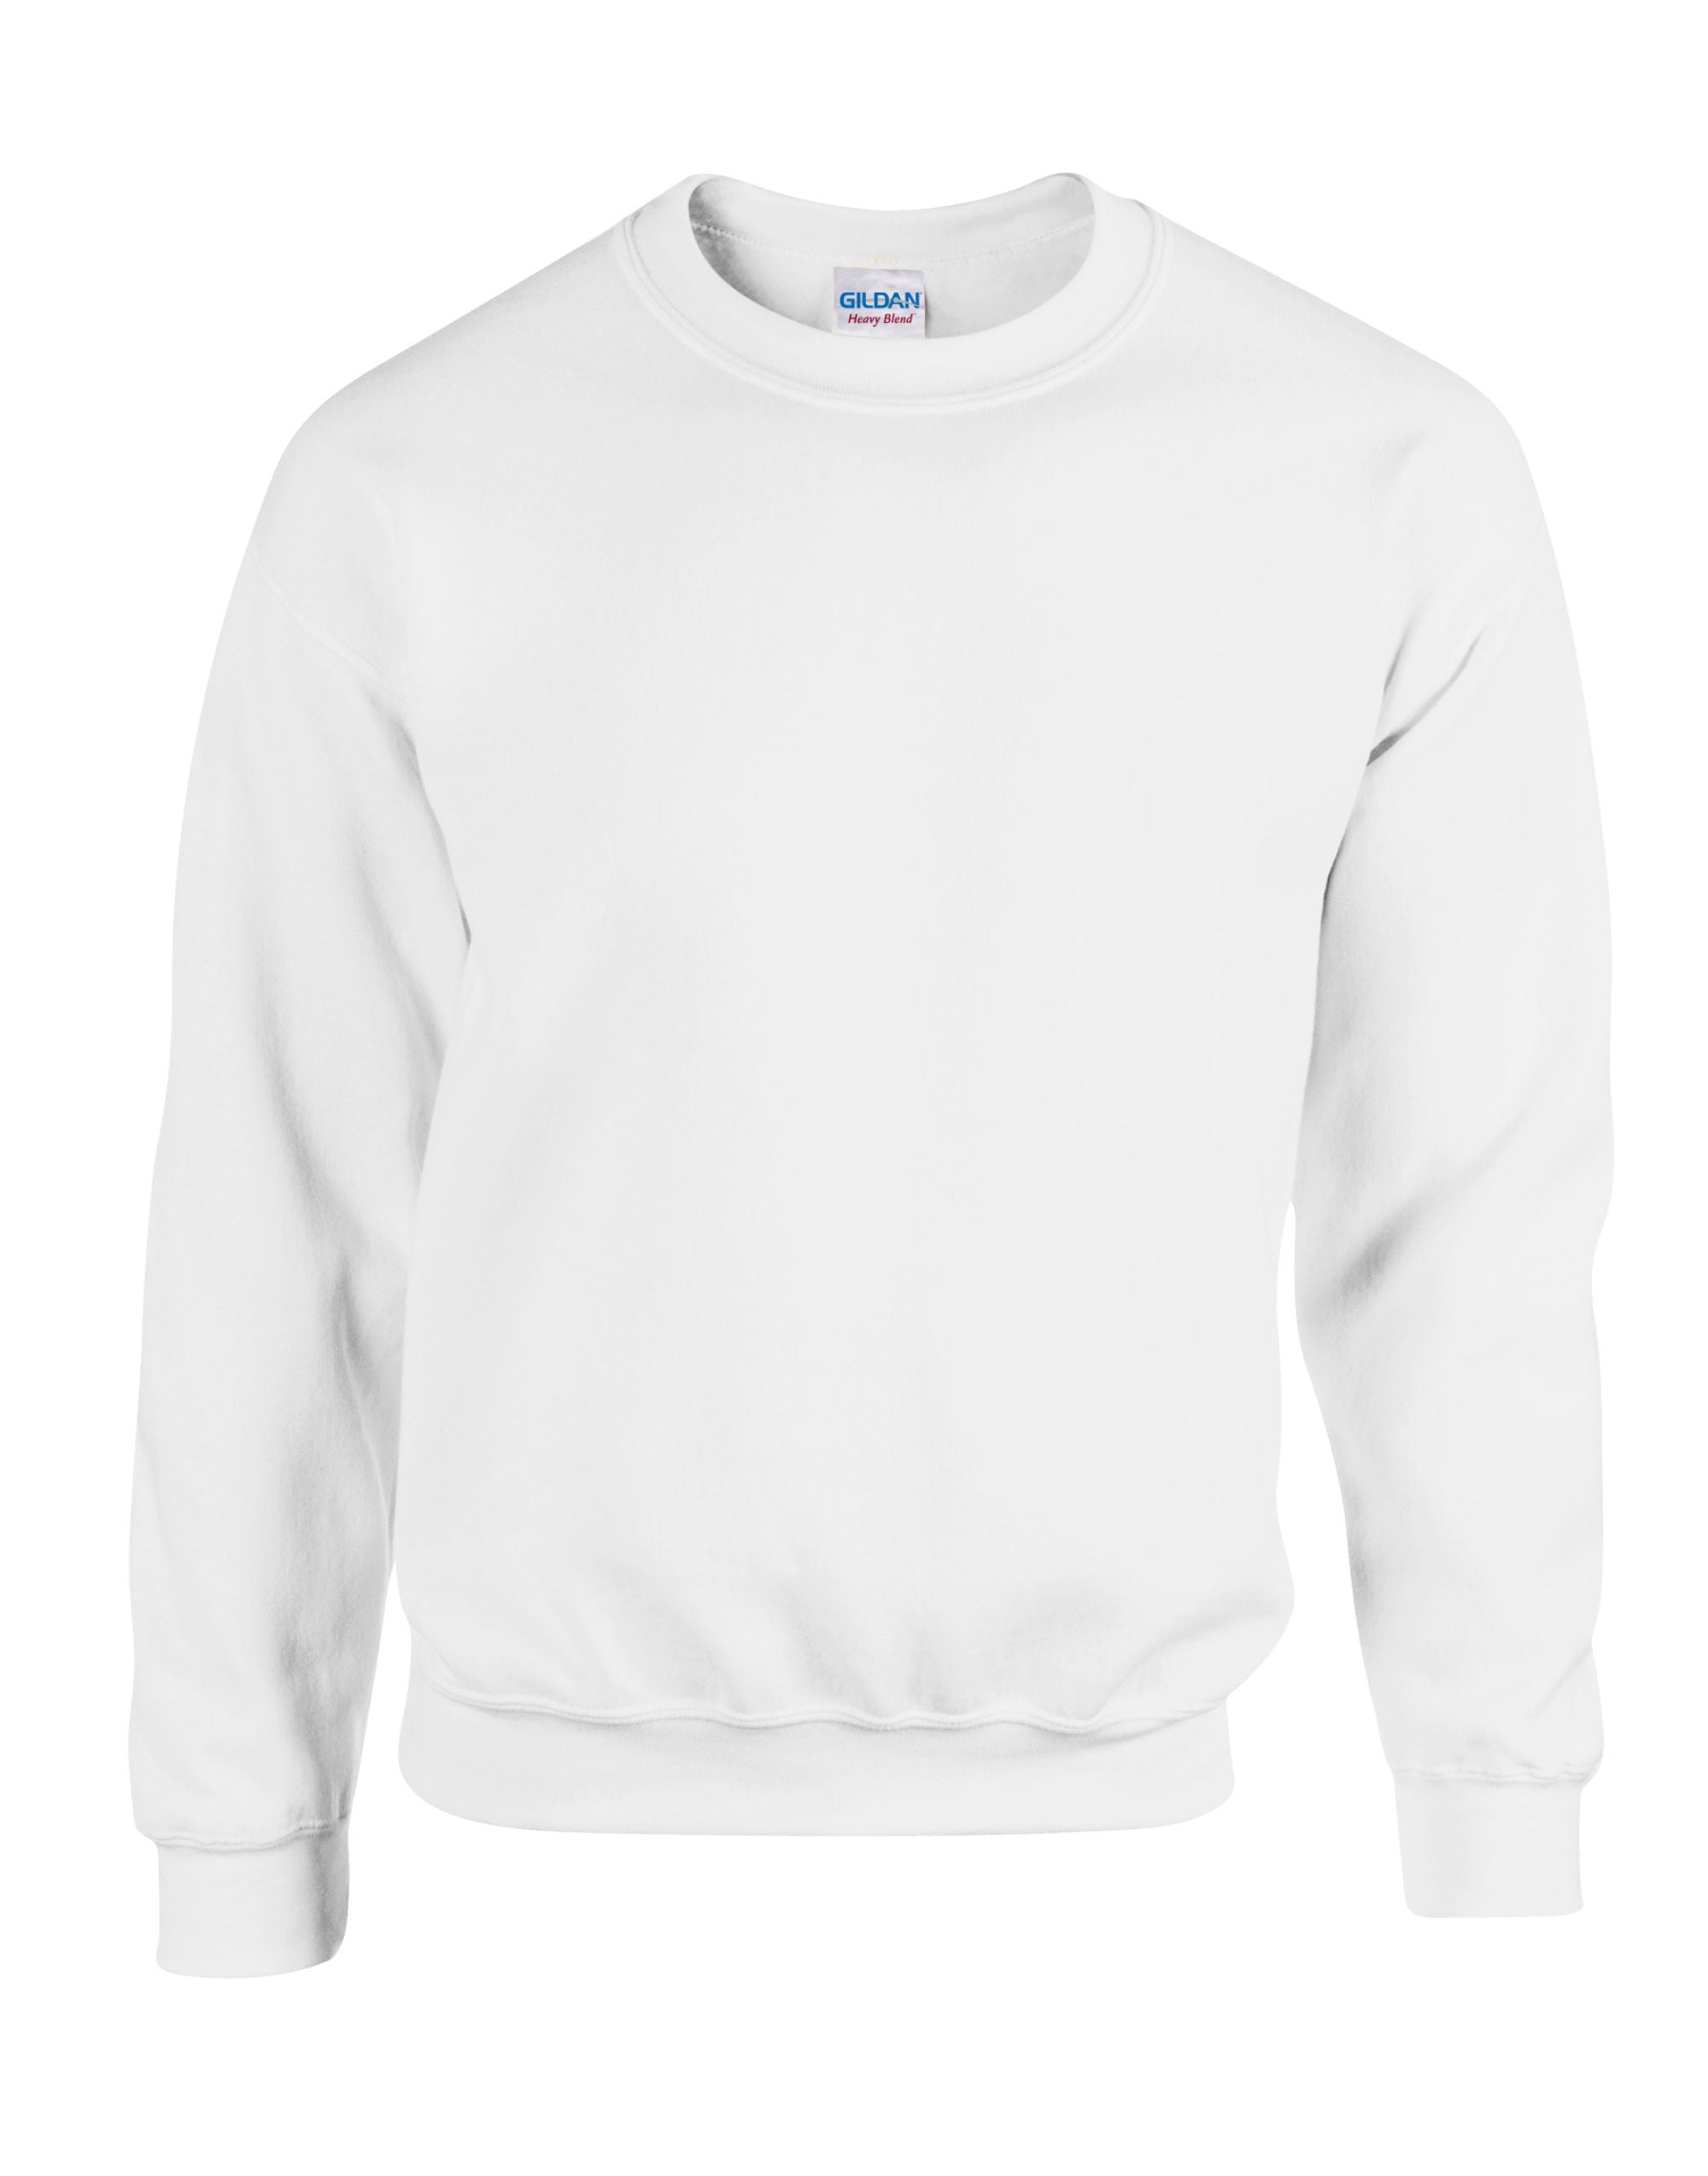 10 x Sweatshirts with Embroidered LOGO